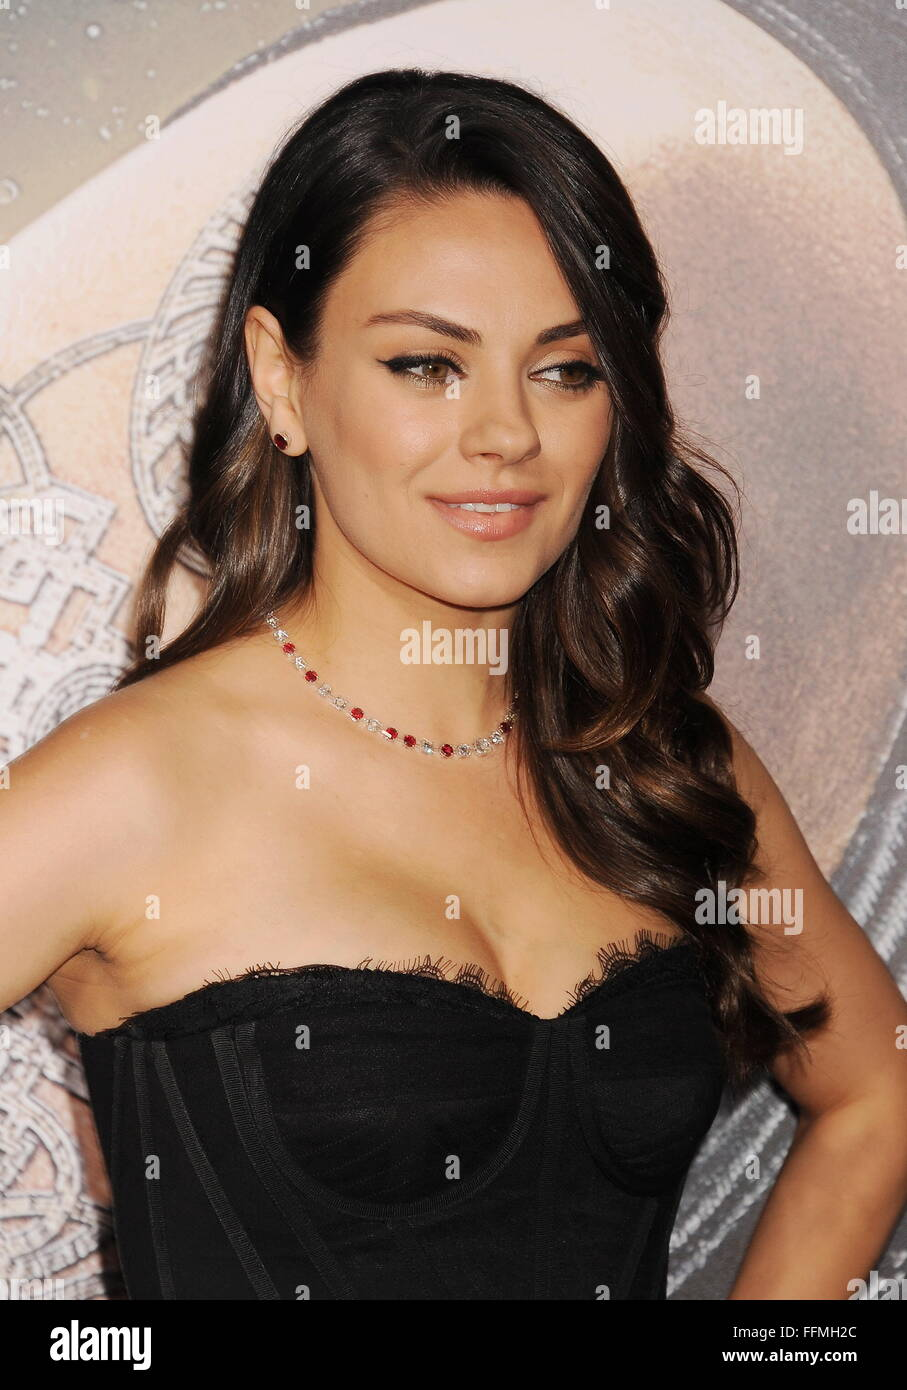 """Actress Mila Kunis arrives at the """"Jupiter Ascending"""" Los Angeles Premiere at TCL Chinese Theatre on February 2, Stock Photo"""